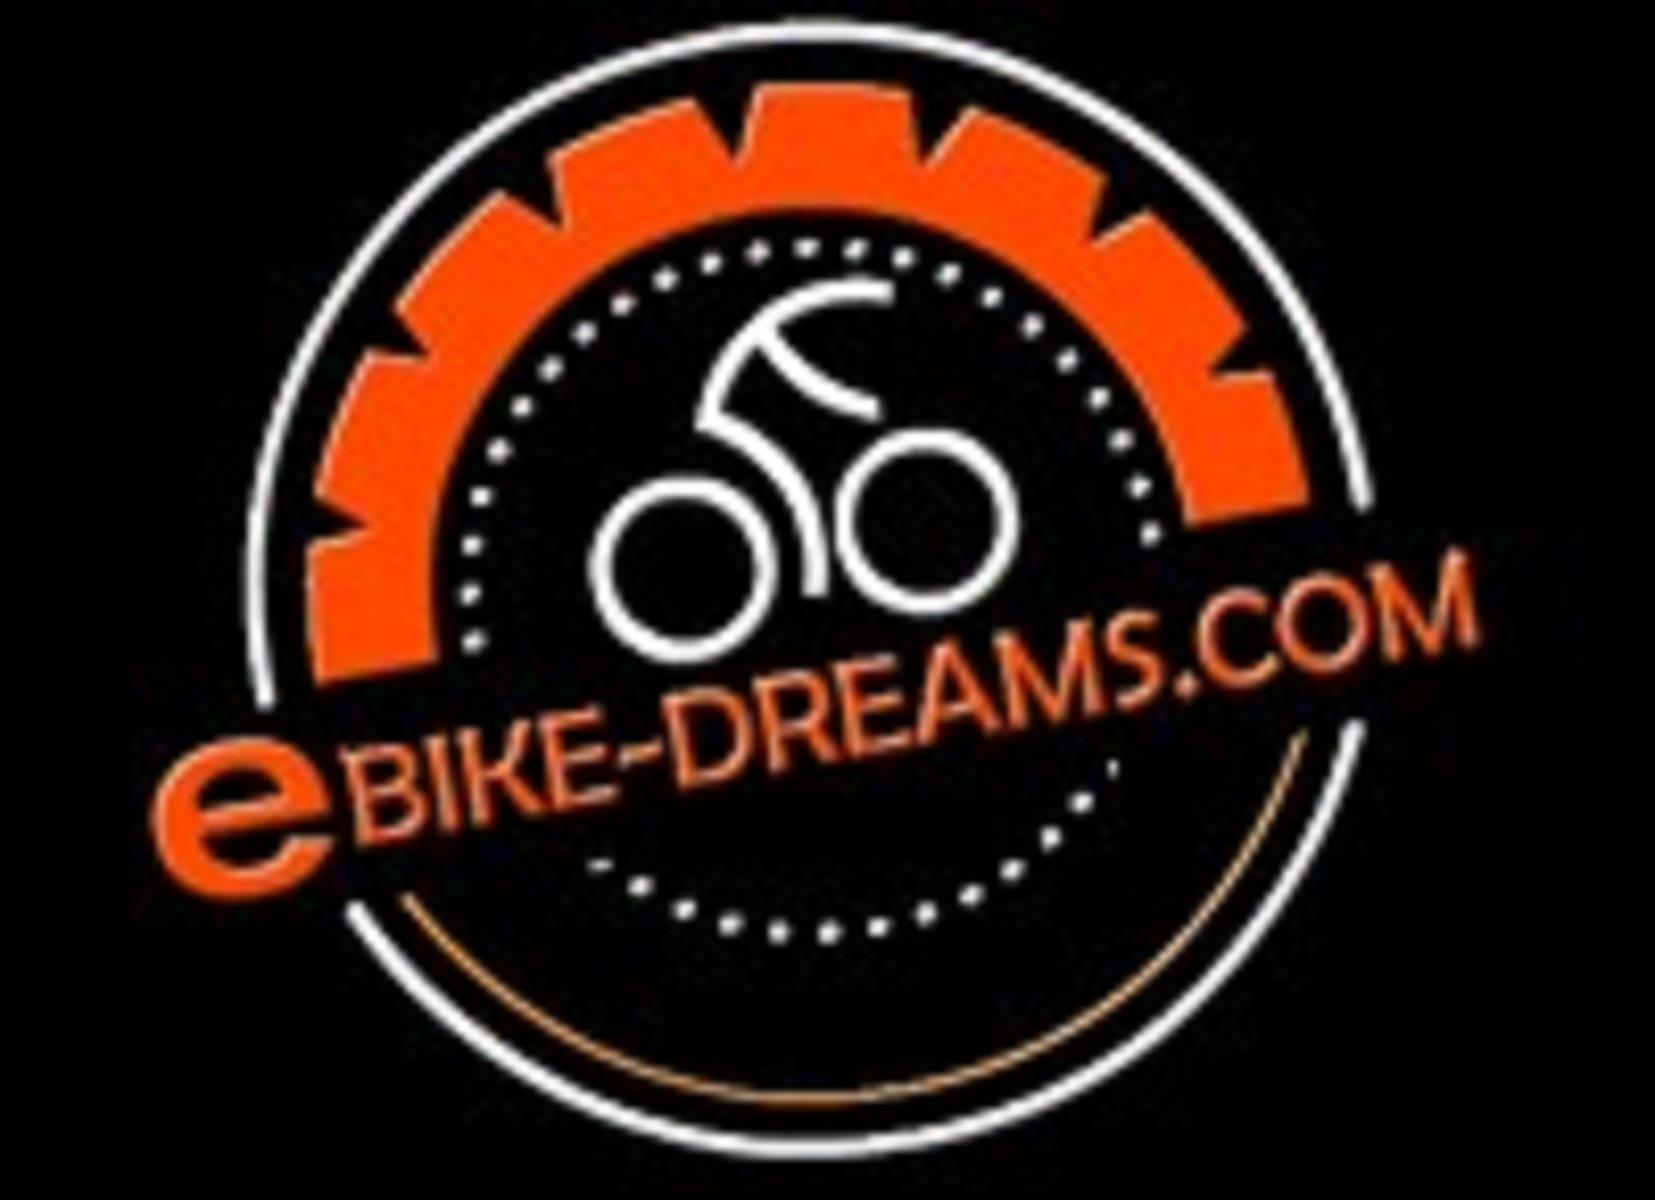 E-bike Dreams